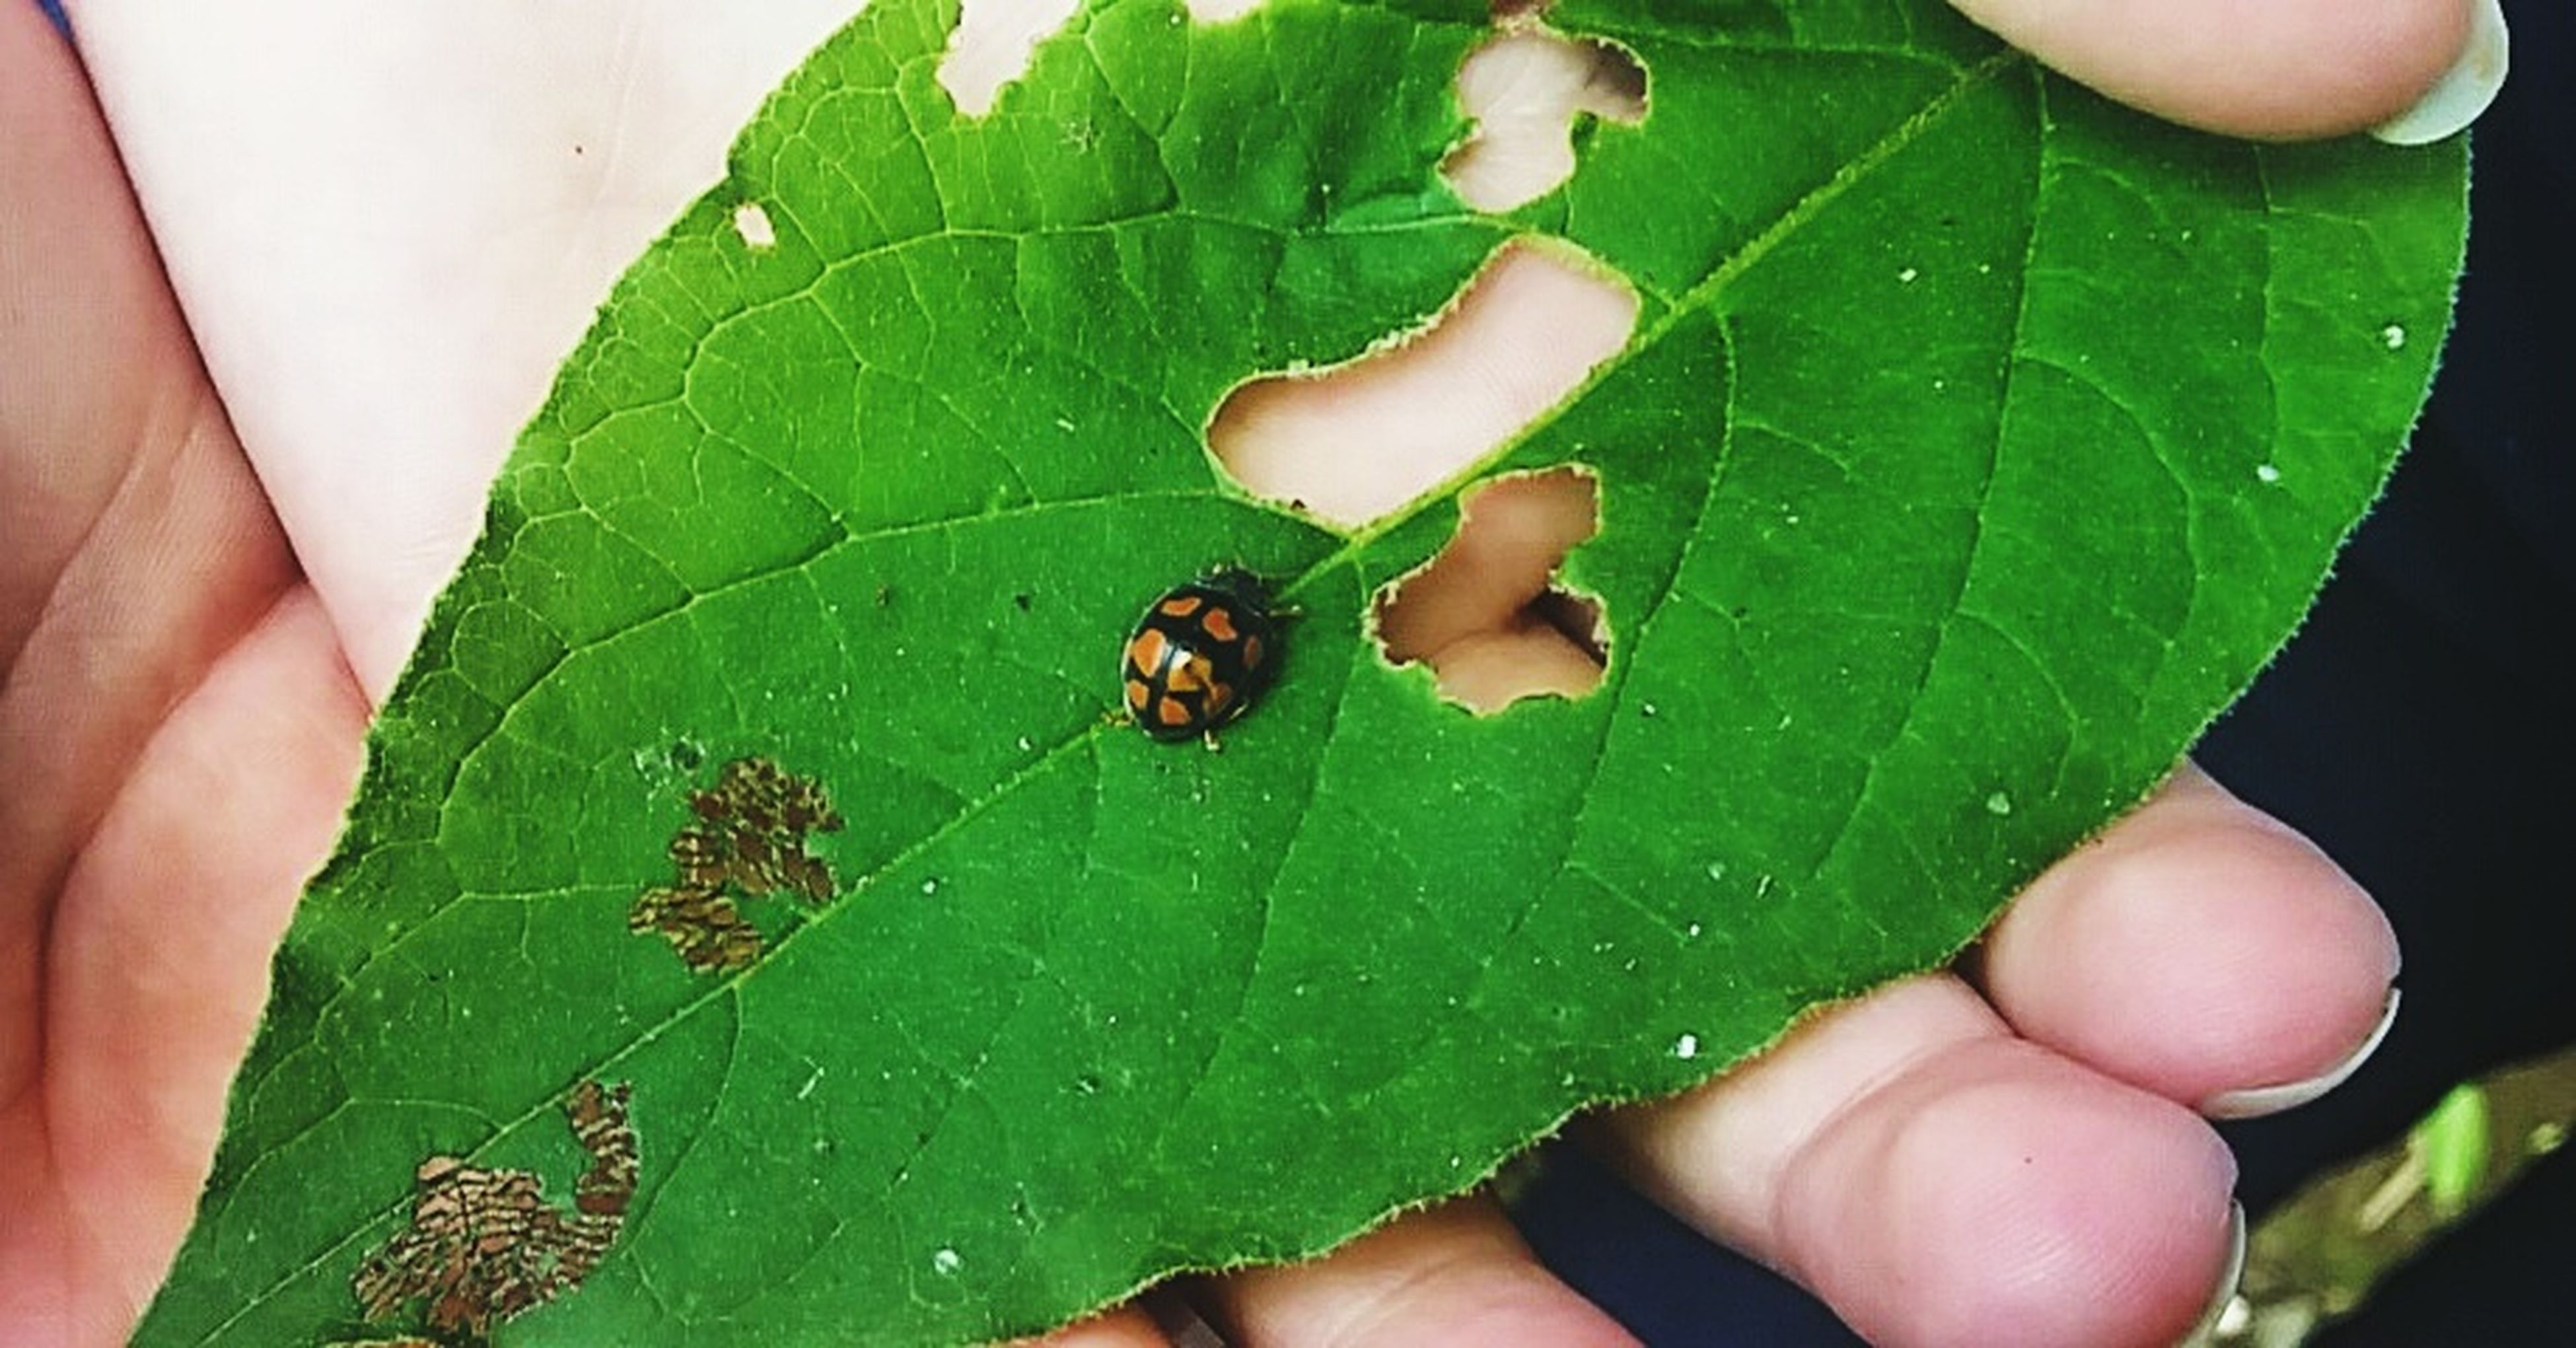 animal themes, person, one animal, animals in the wild, leaf, wildlife, insect, human finger, holding, green color, part of, unrecognizable person, close-up, cropped, personal perspective, leaf vein, high angle view